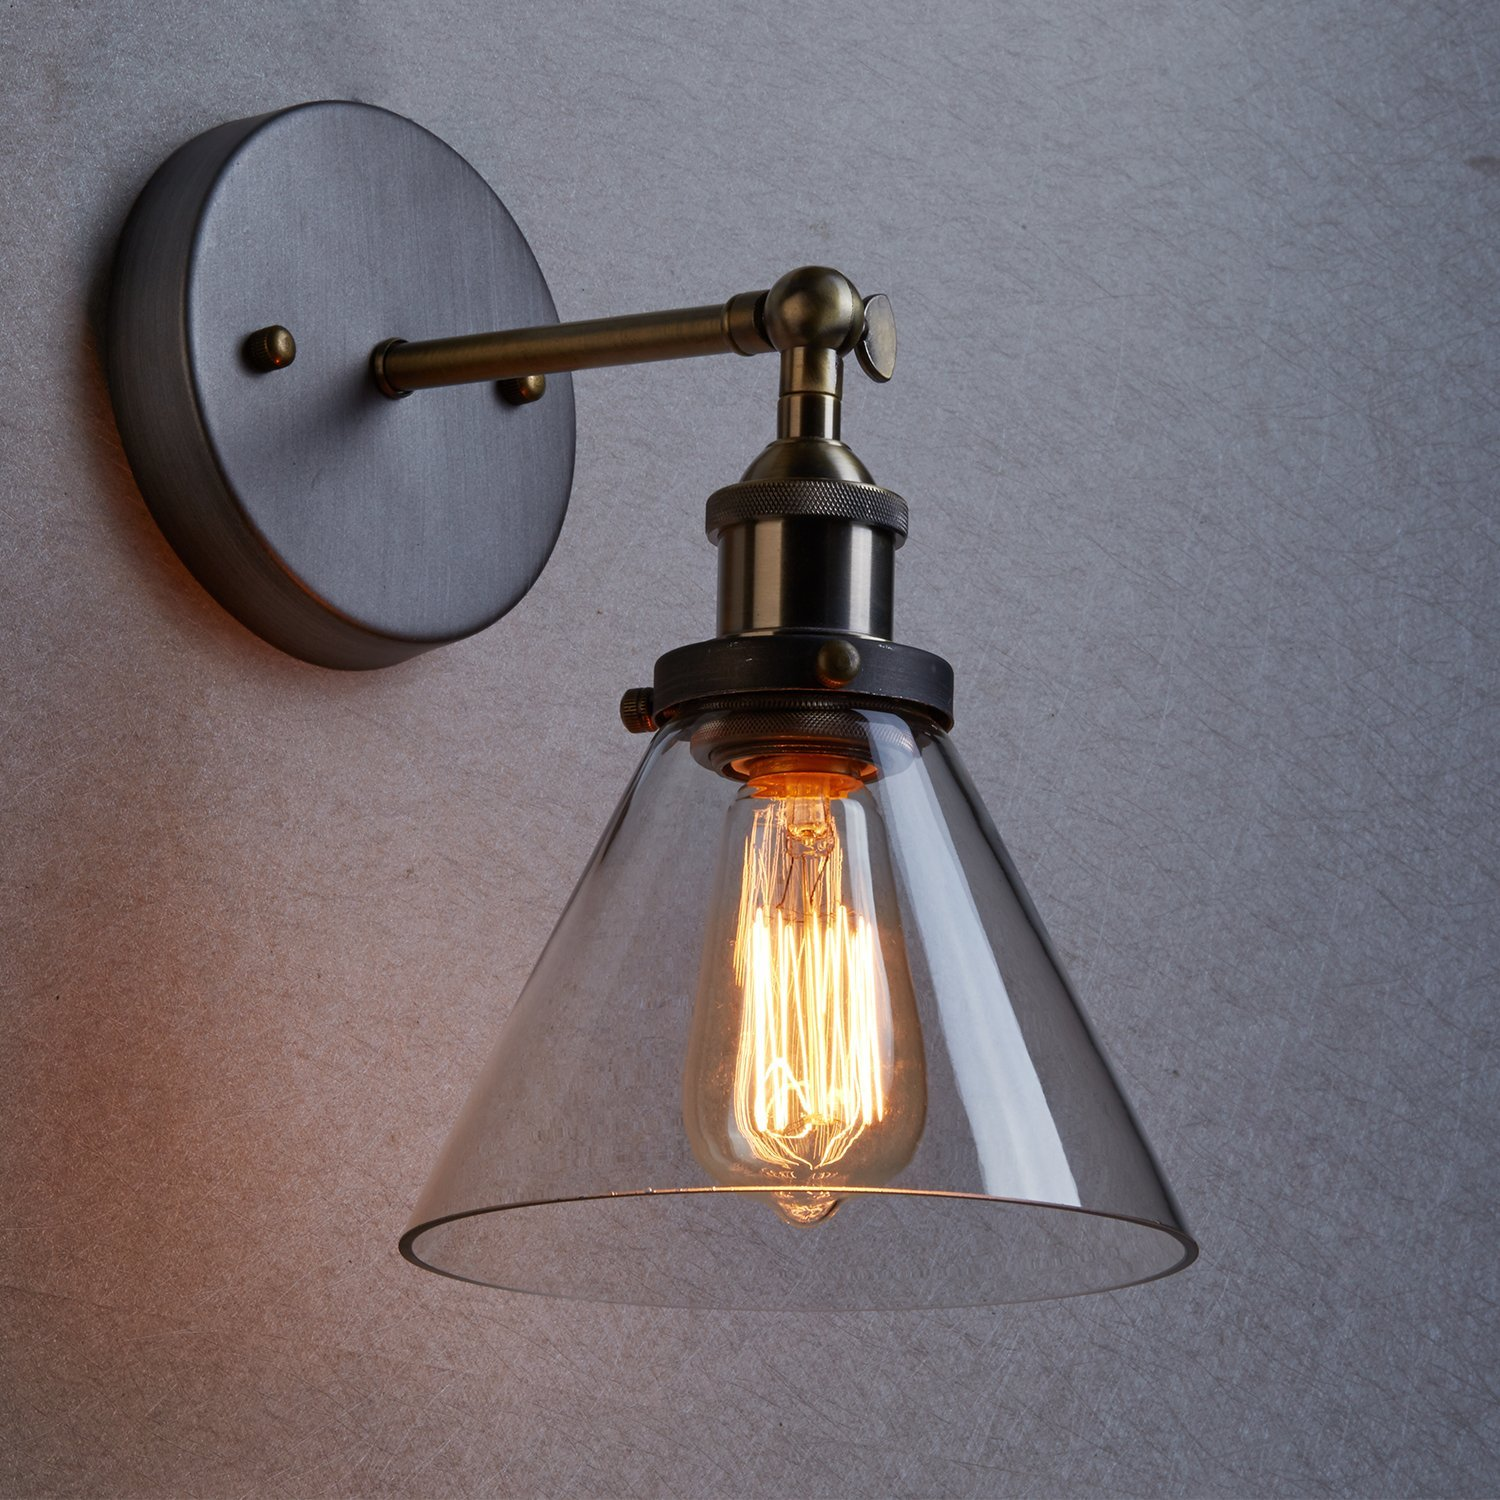 Image of: Industrial Wall Sconce Light Glass